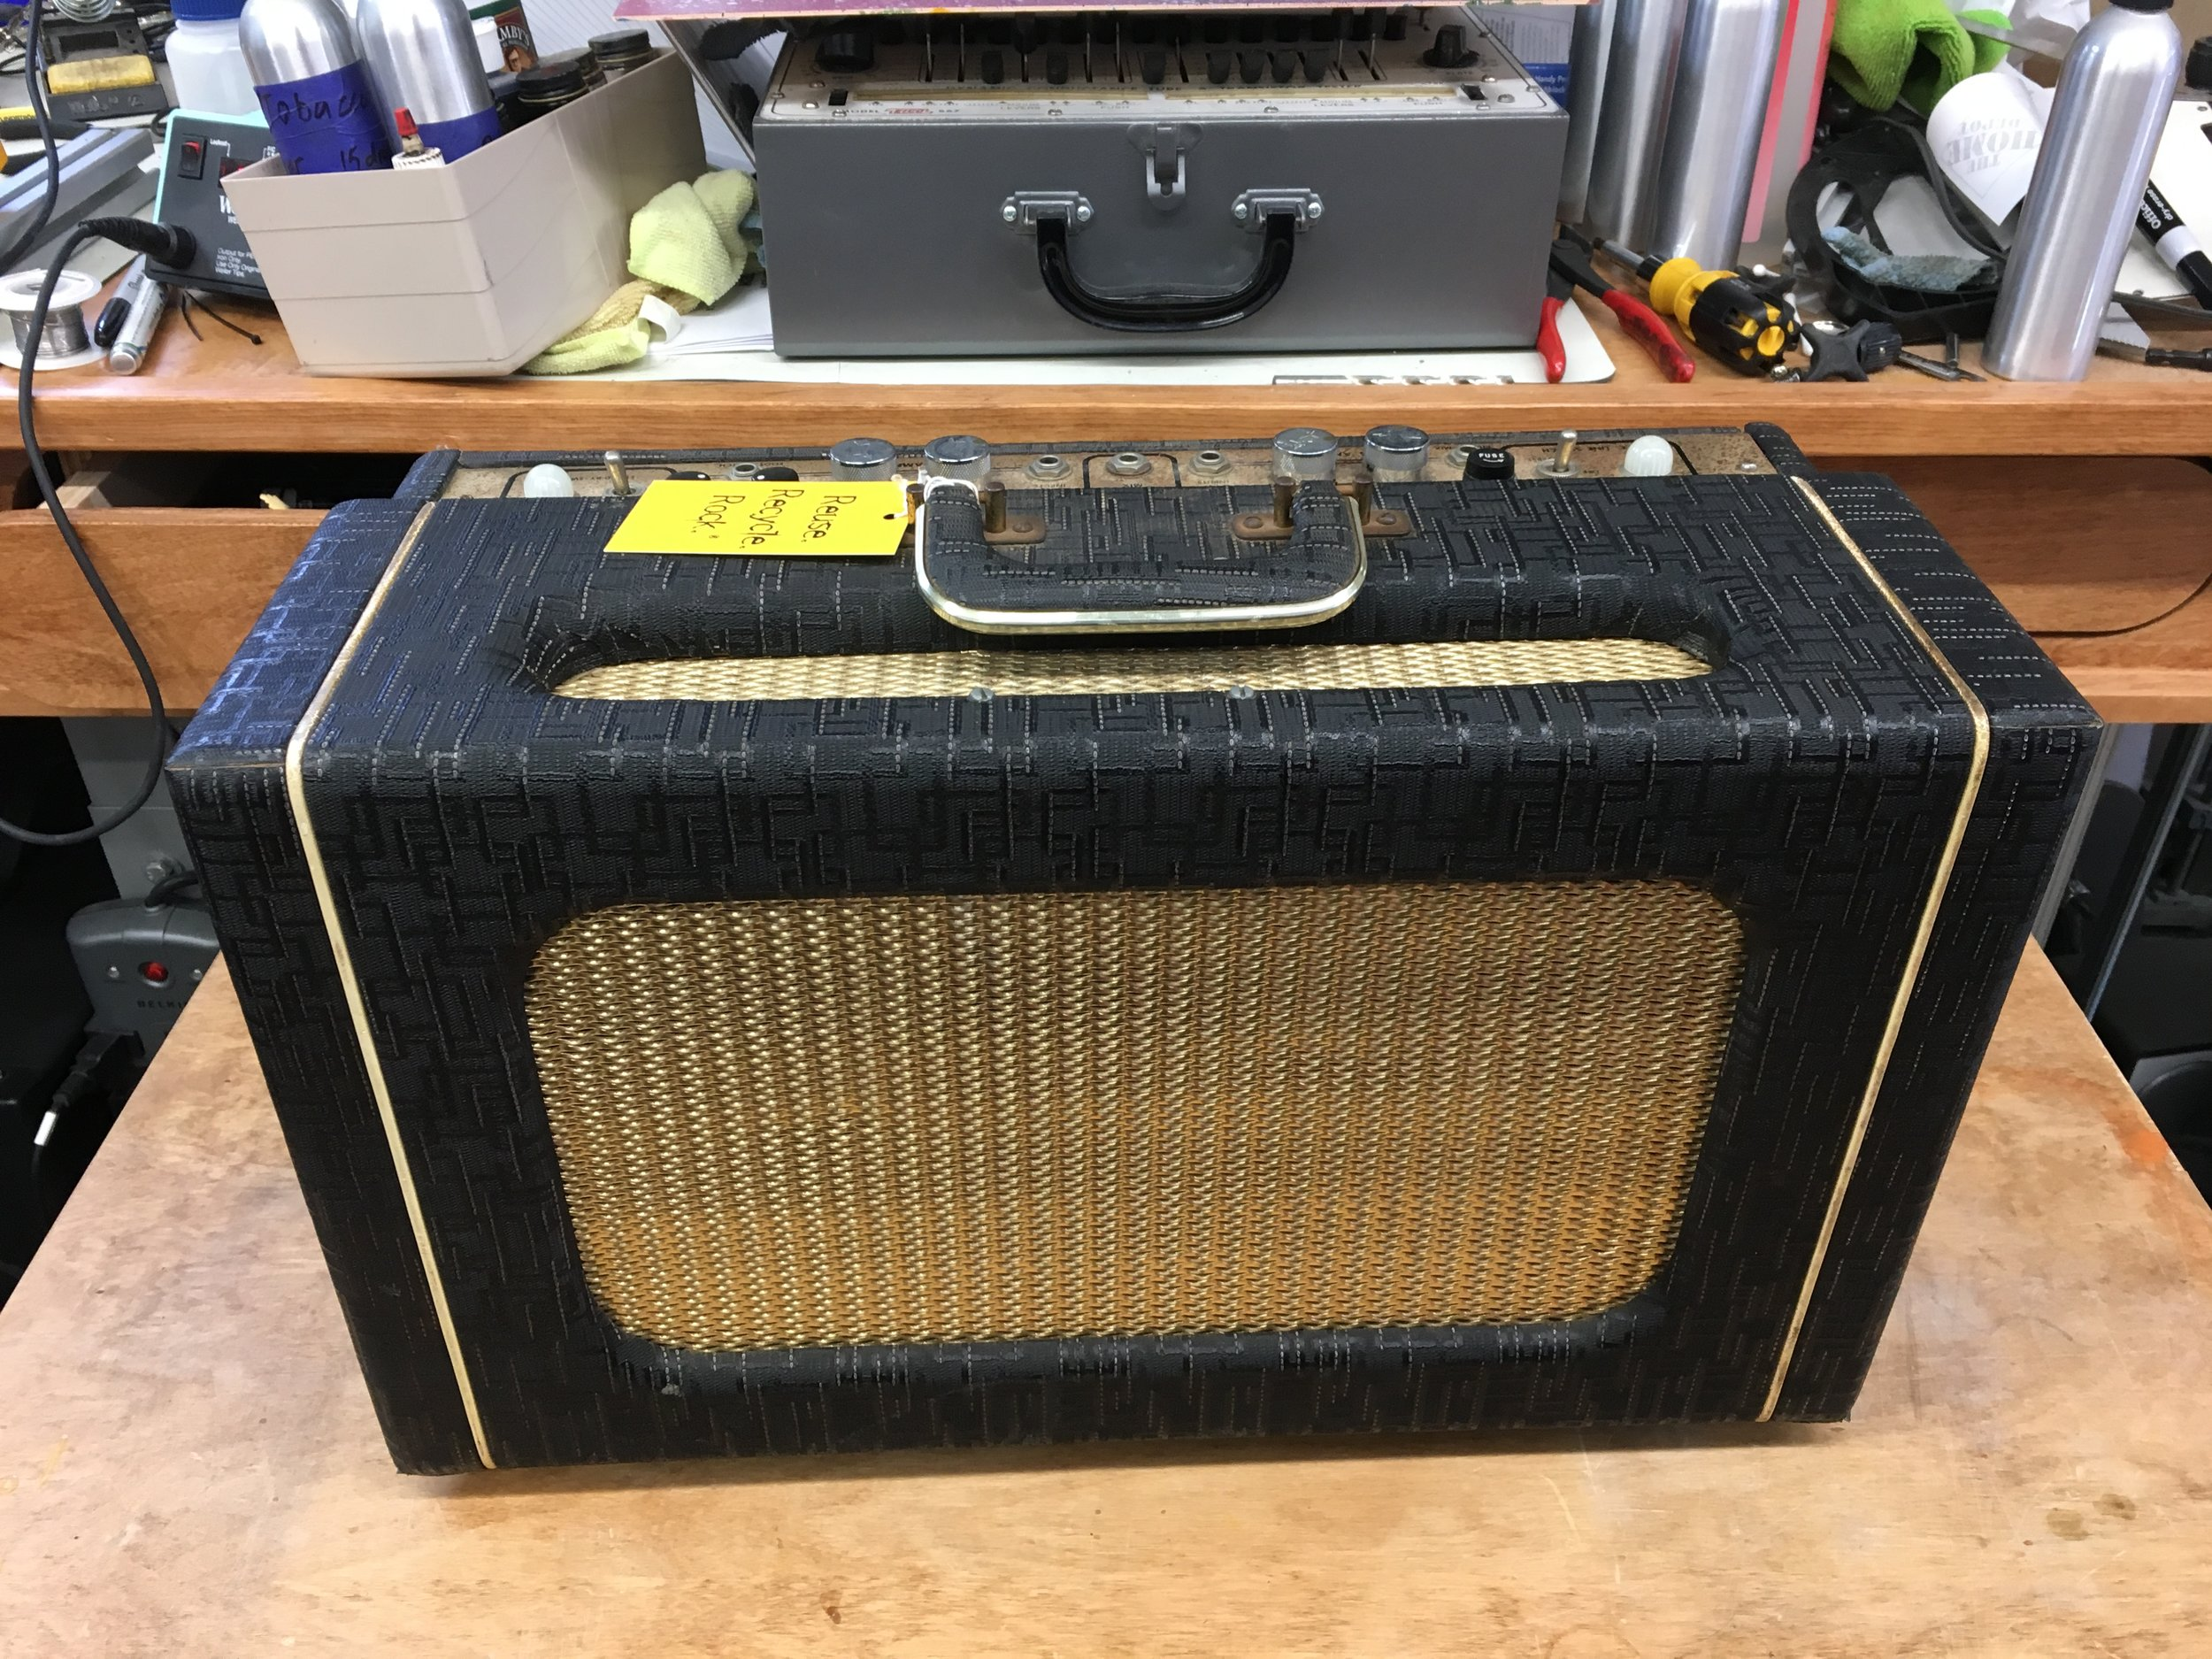 Early 60's Gretsch Stereo King made for the stereo White Falcon guitars.